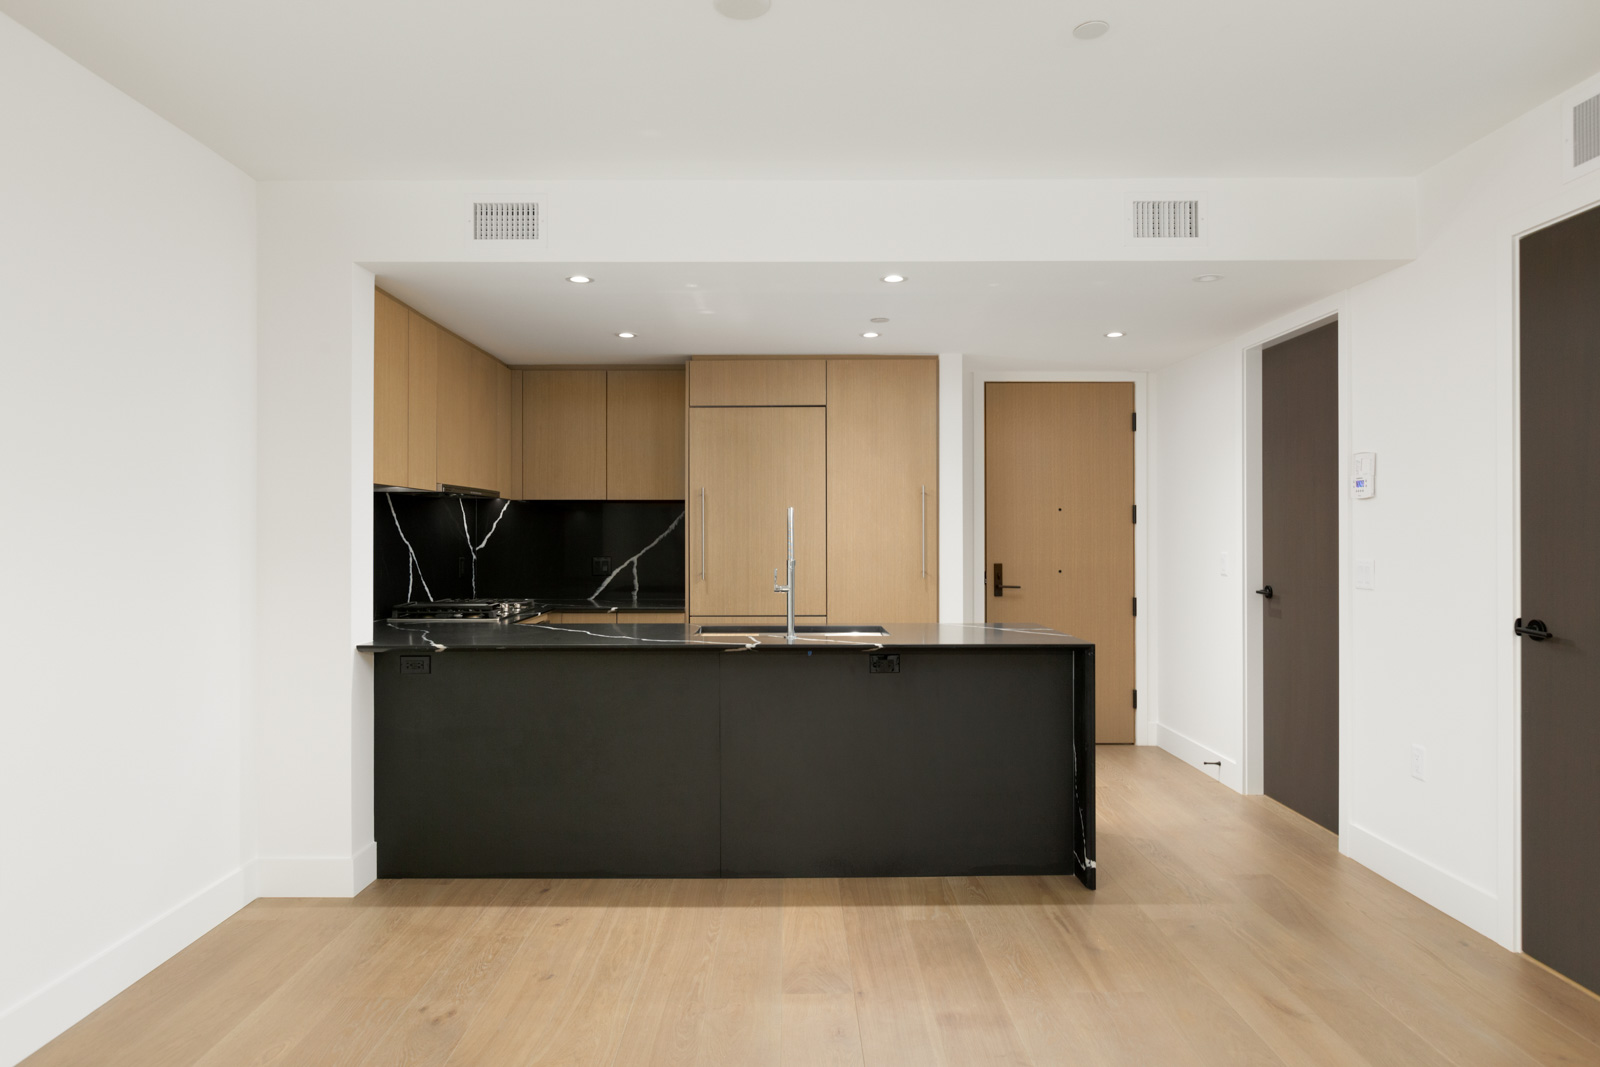 front view of kitchen in vancouver rental condo with dark counter in foreground and lighter kitchen wall with wood cabinets in background